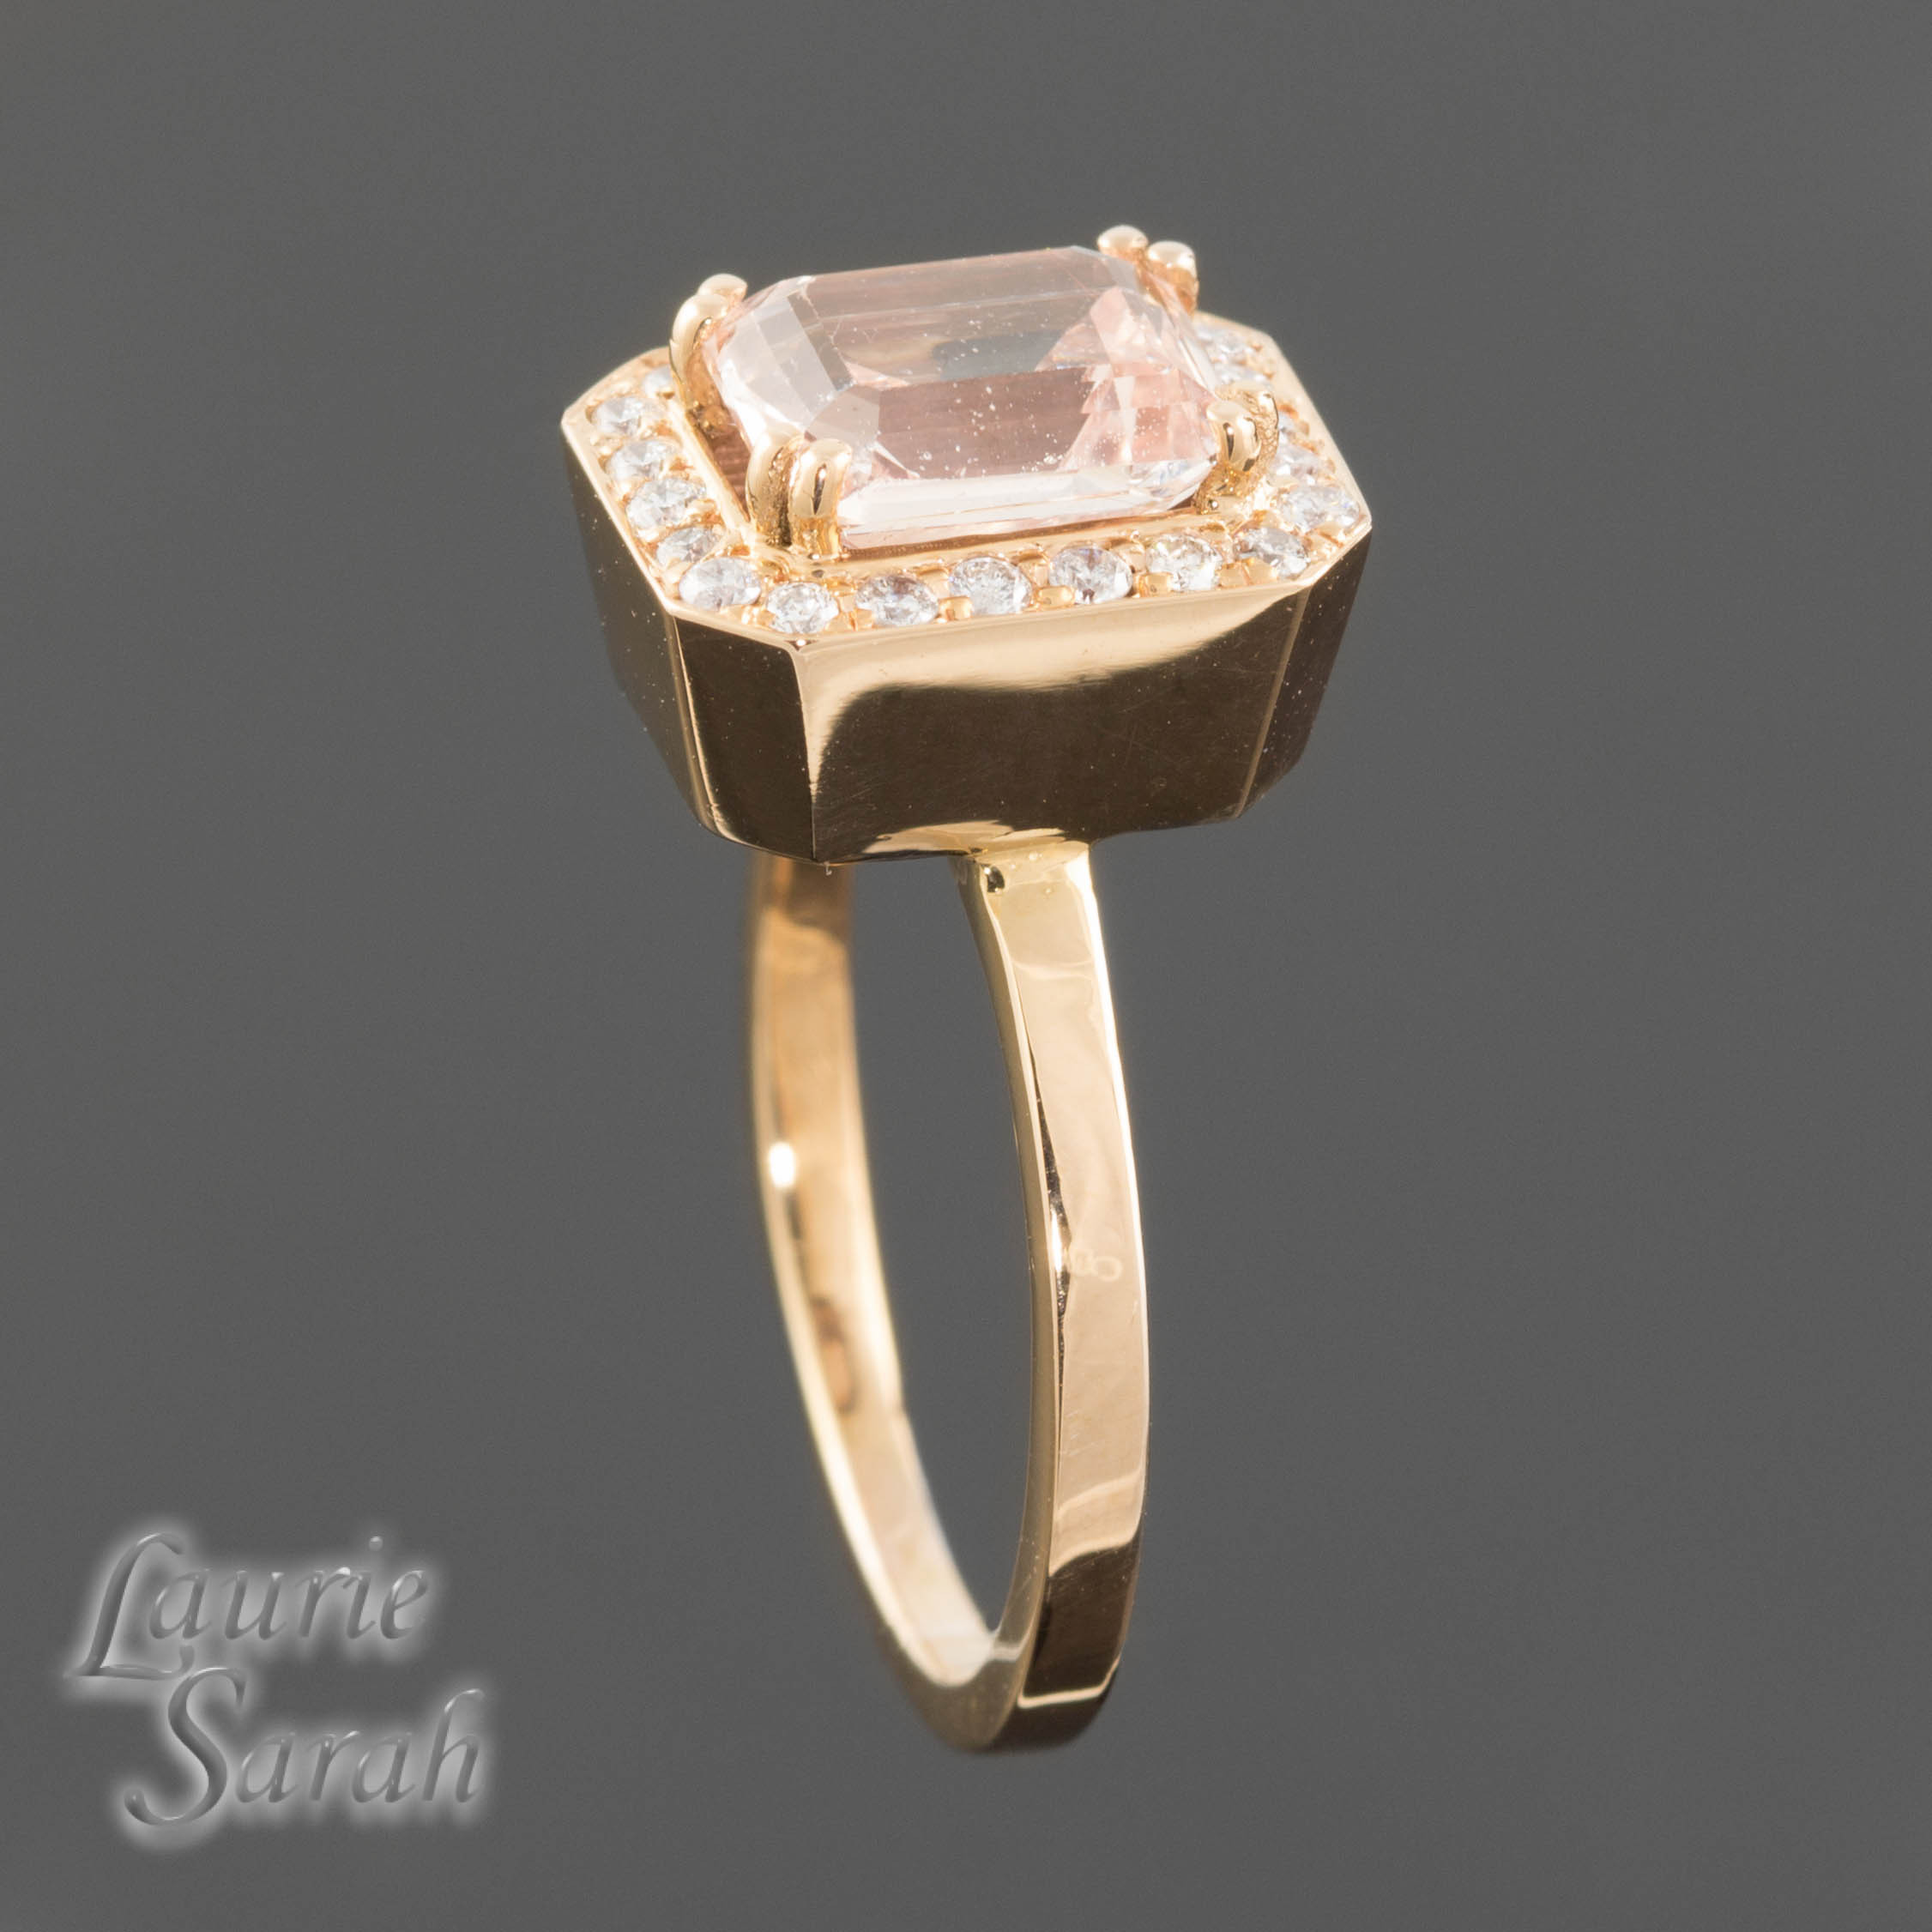 Jewelry, white, pink, green, silver, gold, Engagement Rings, Emerald Cut Engagement Ring, Ring, Engagement, Diamond, Inspiration board, Sapphire, Cut, Emerald